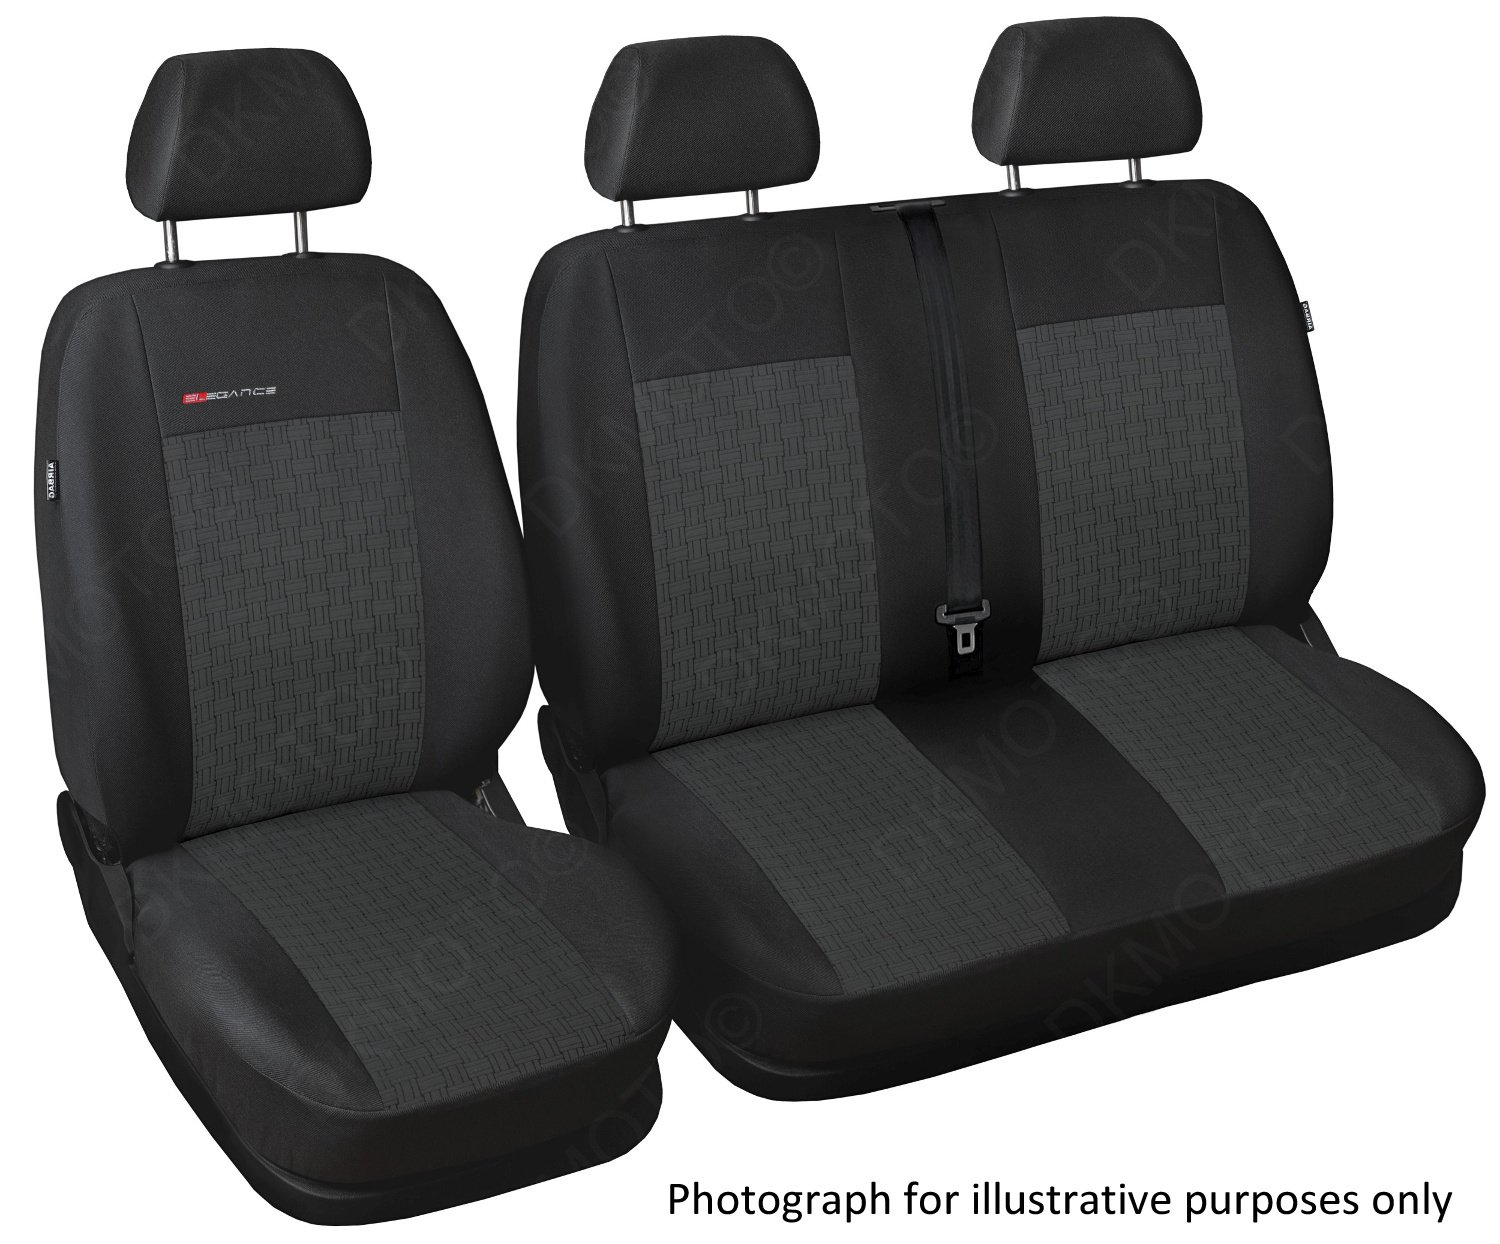 Tailored seat covers - WITH FOLD DOWN TABLE (PATTERN 1) DKMOTO 594P1